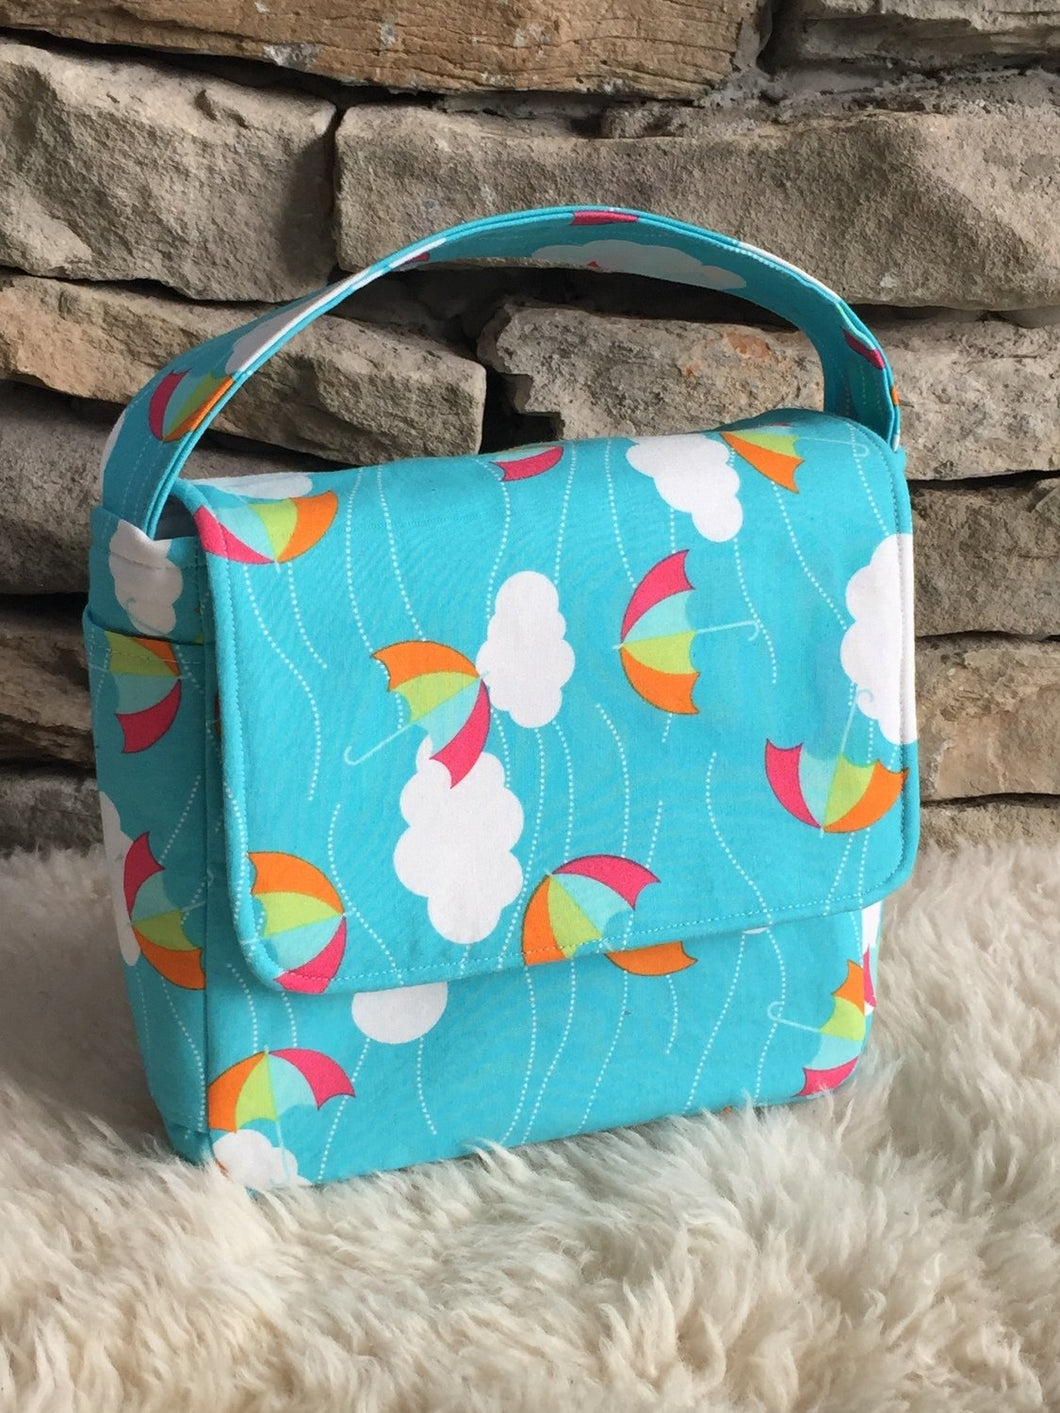 CUSTOM ORDER - Boxy Insulated Lunch Bag